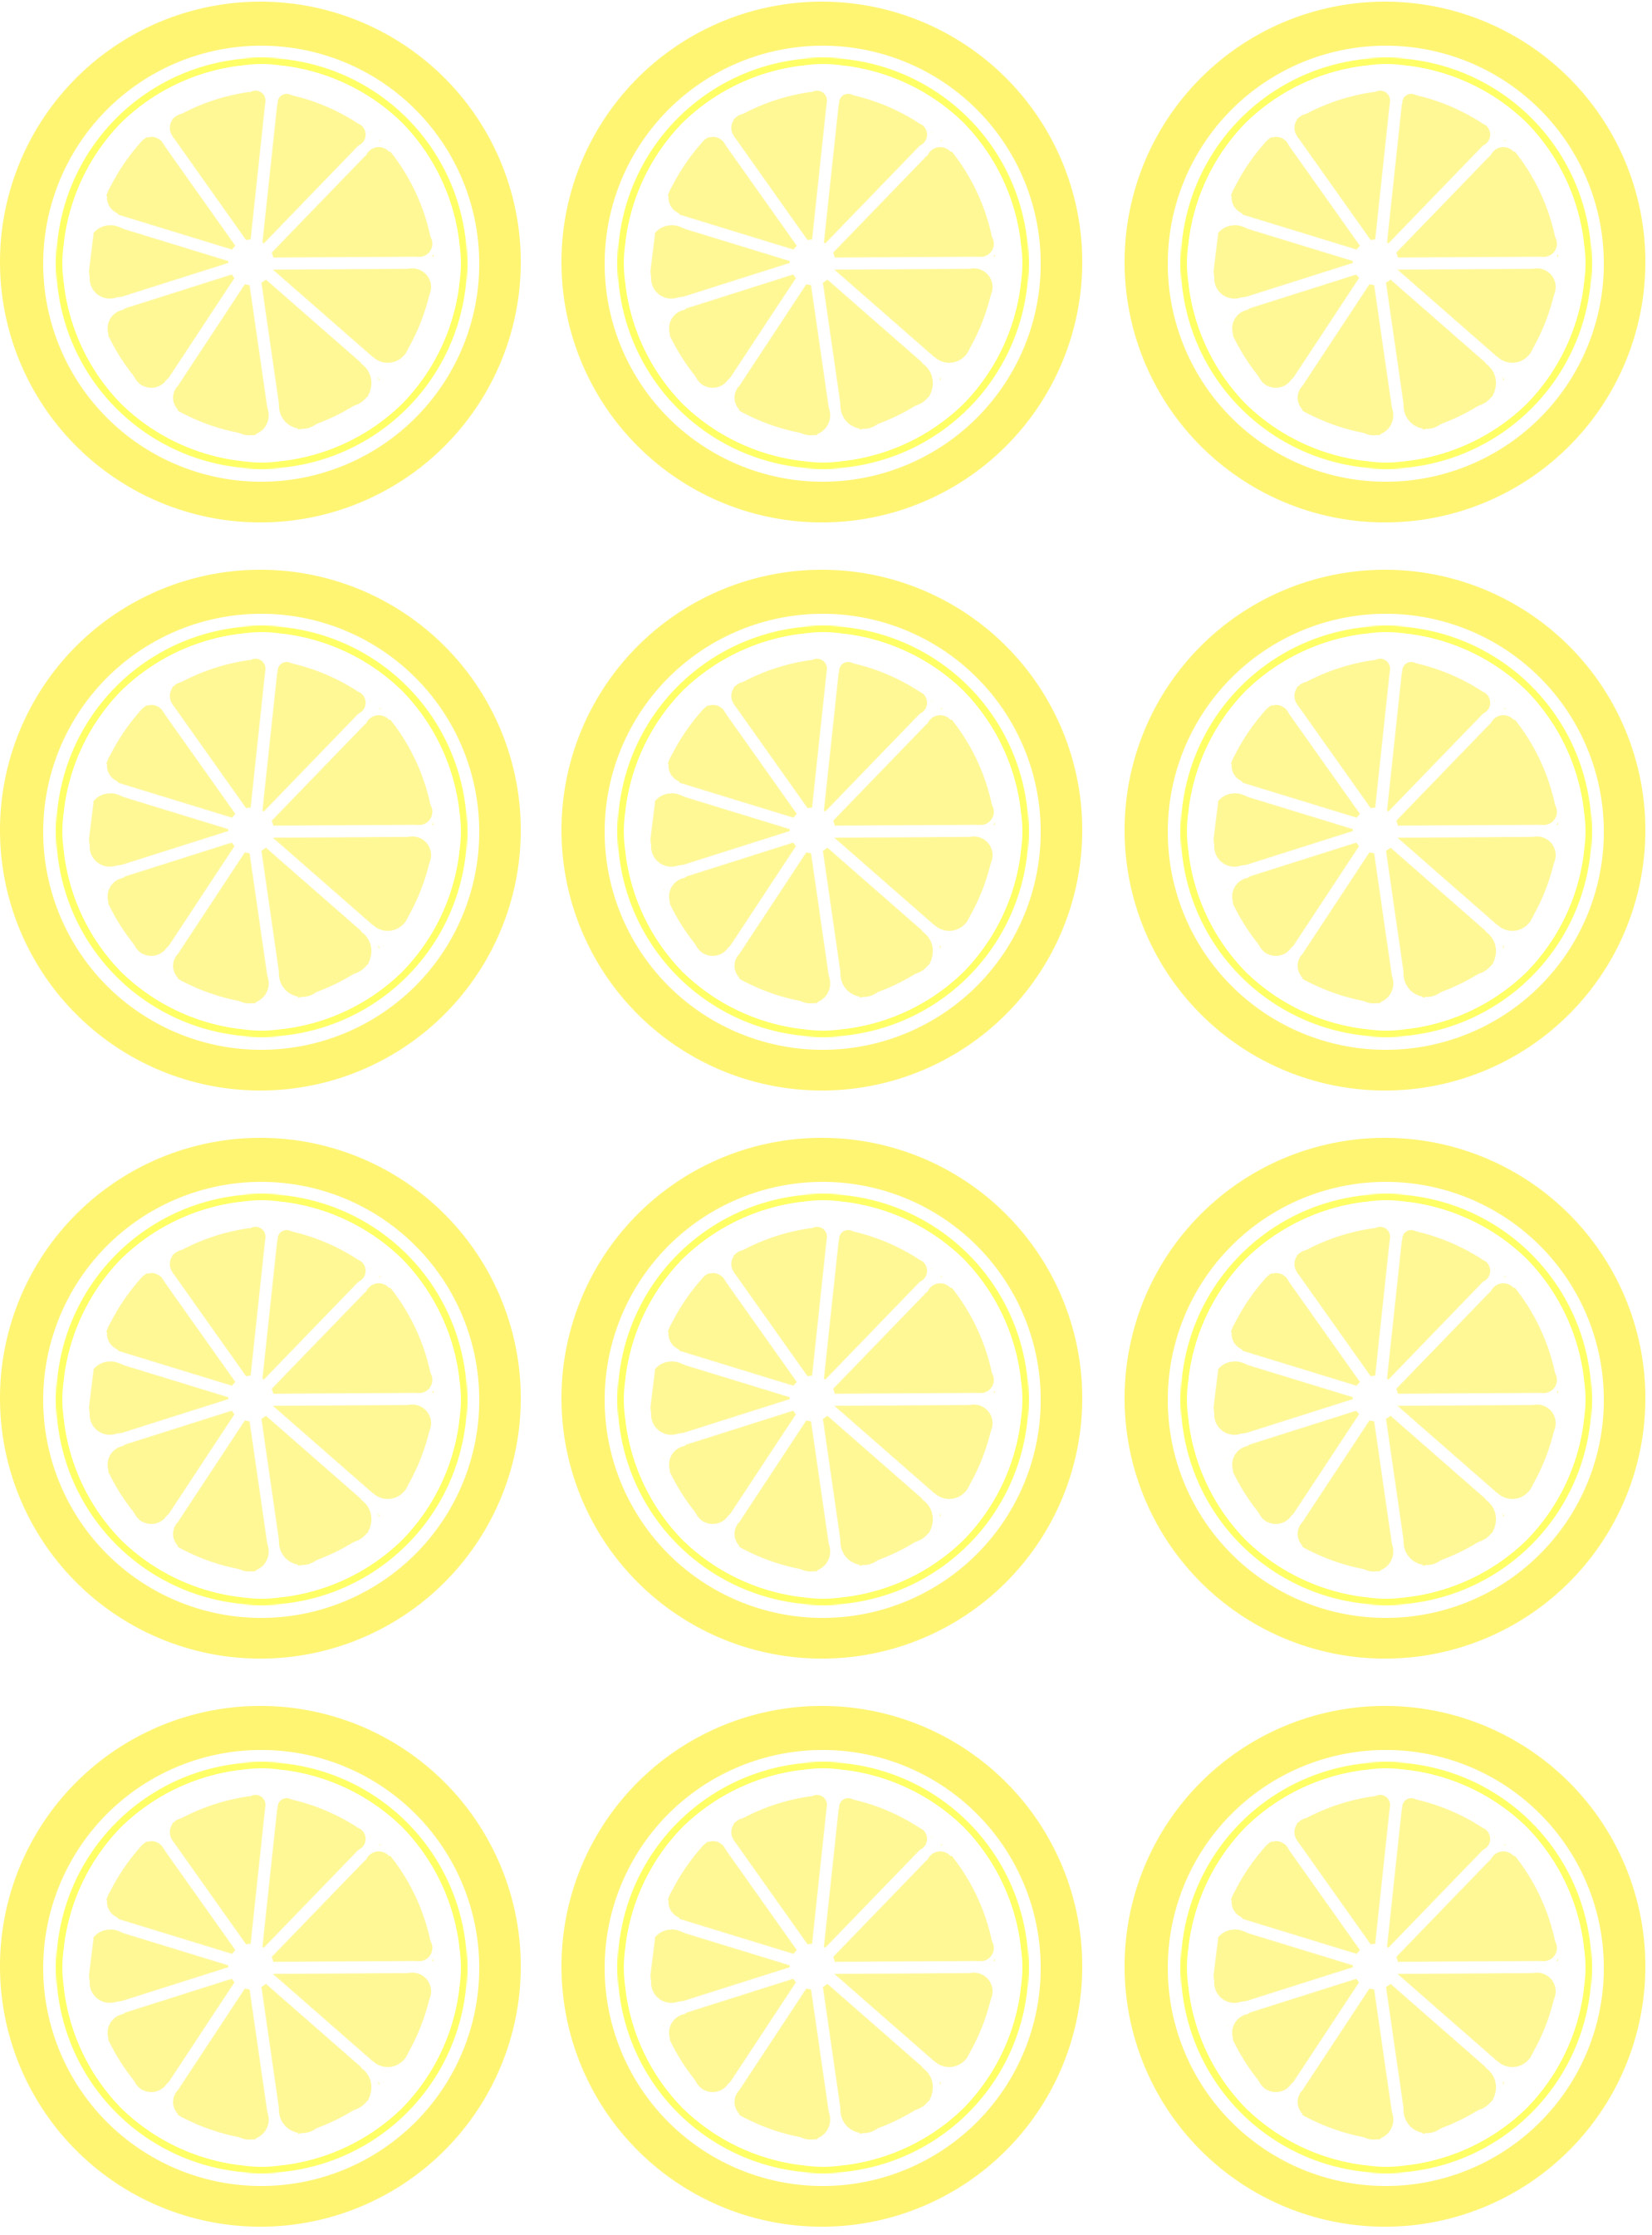 5 Images of Little Printable Pictures Of Lemons